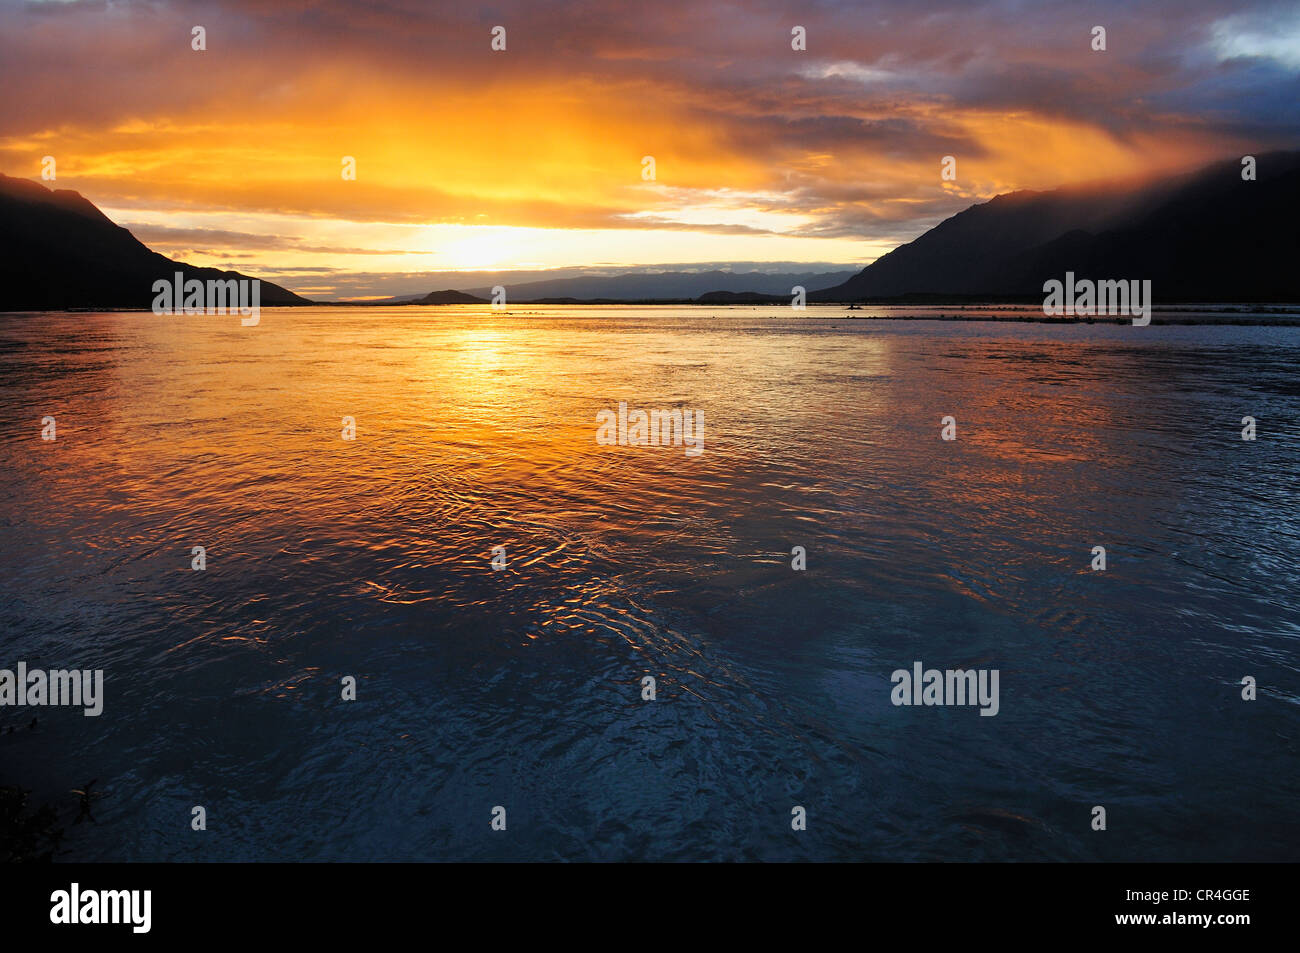 Sunset over Knik River, Chugach Mountains, Alaska, USA, North America - Stock Image